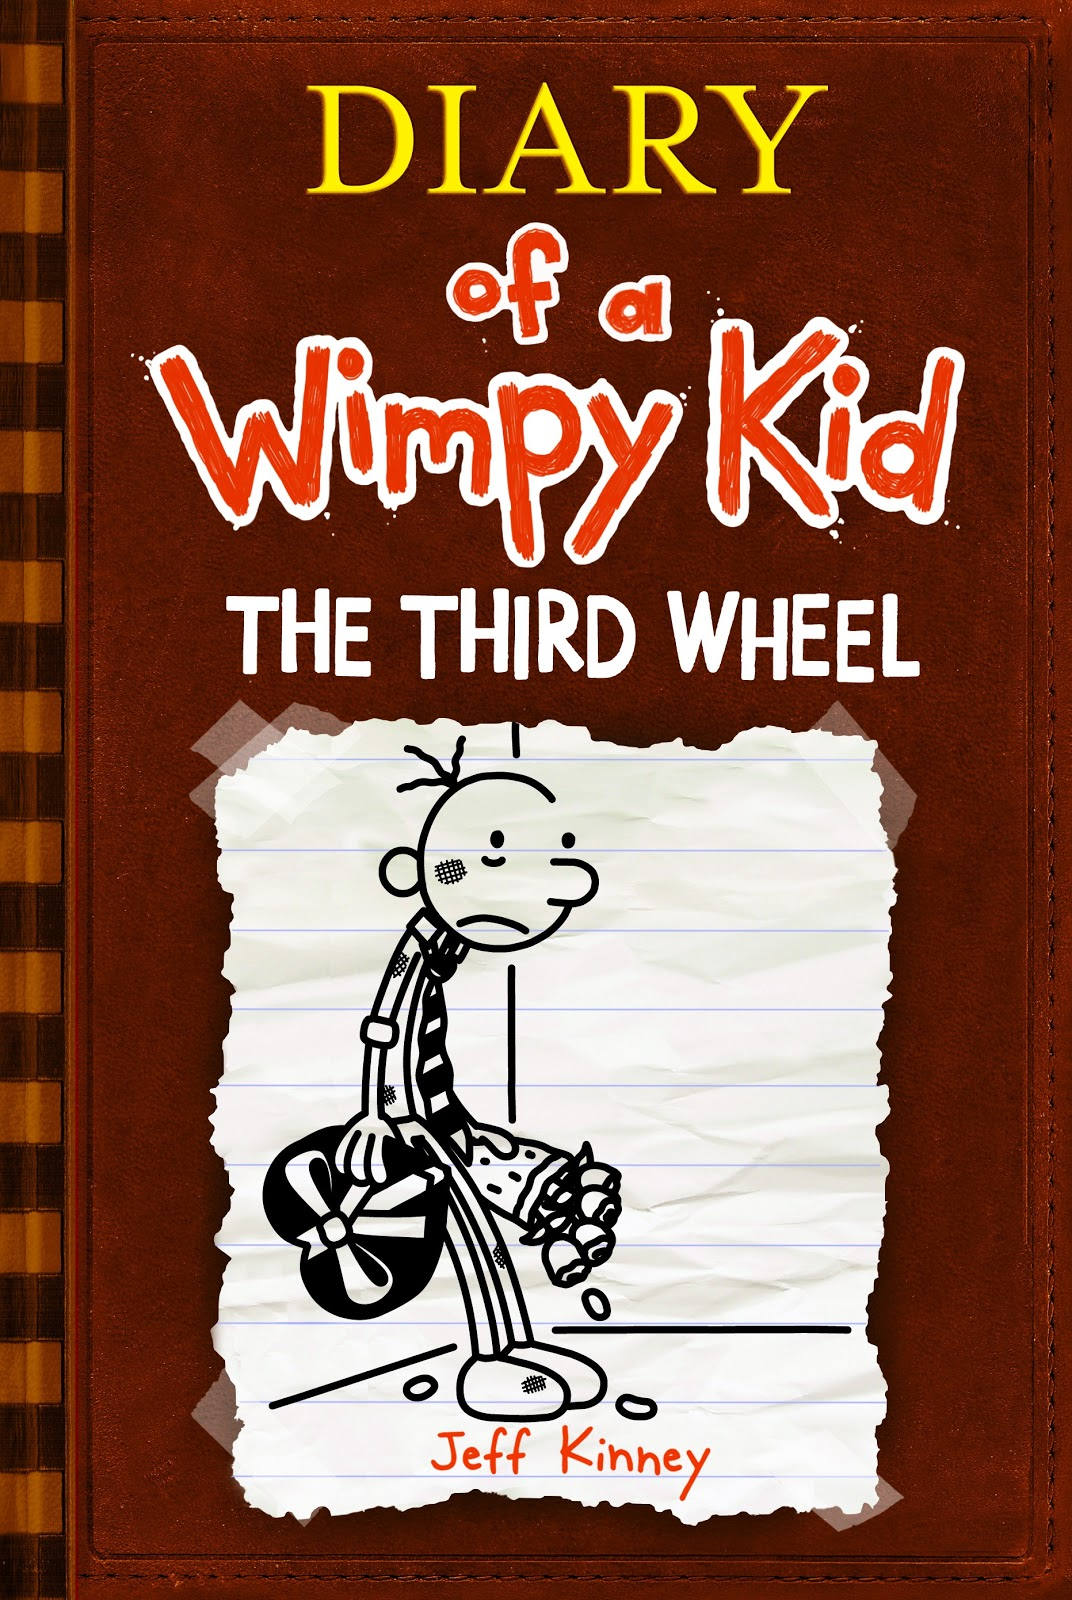 Another wimpy kid title clears 1 million copy mark the beat pw just posted this update about the wimpy kid series by jeff kinney granted the article quotes bookscan numbers and even if they are a poor solutioingenieria Gallery